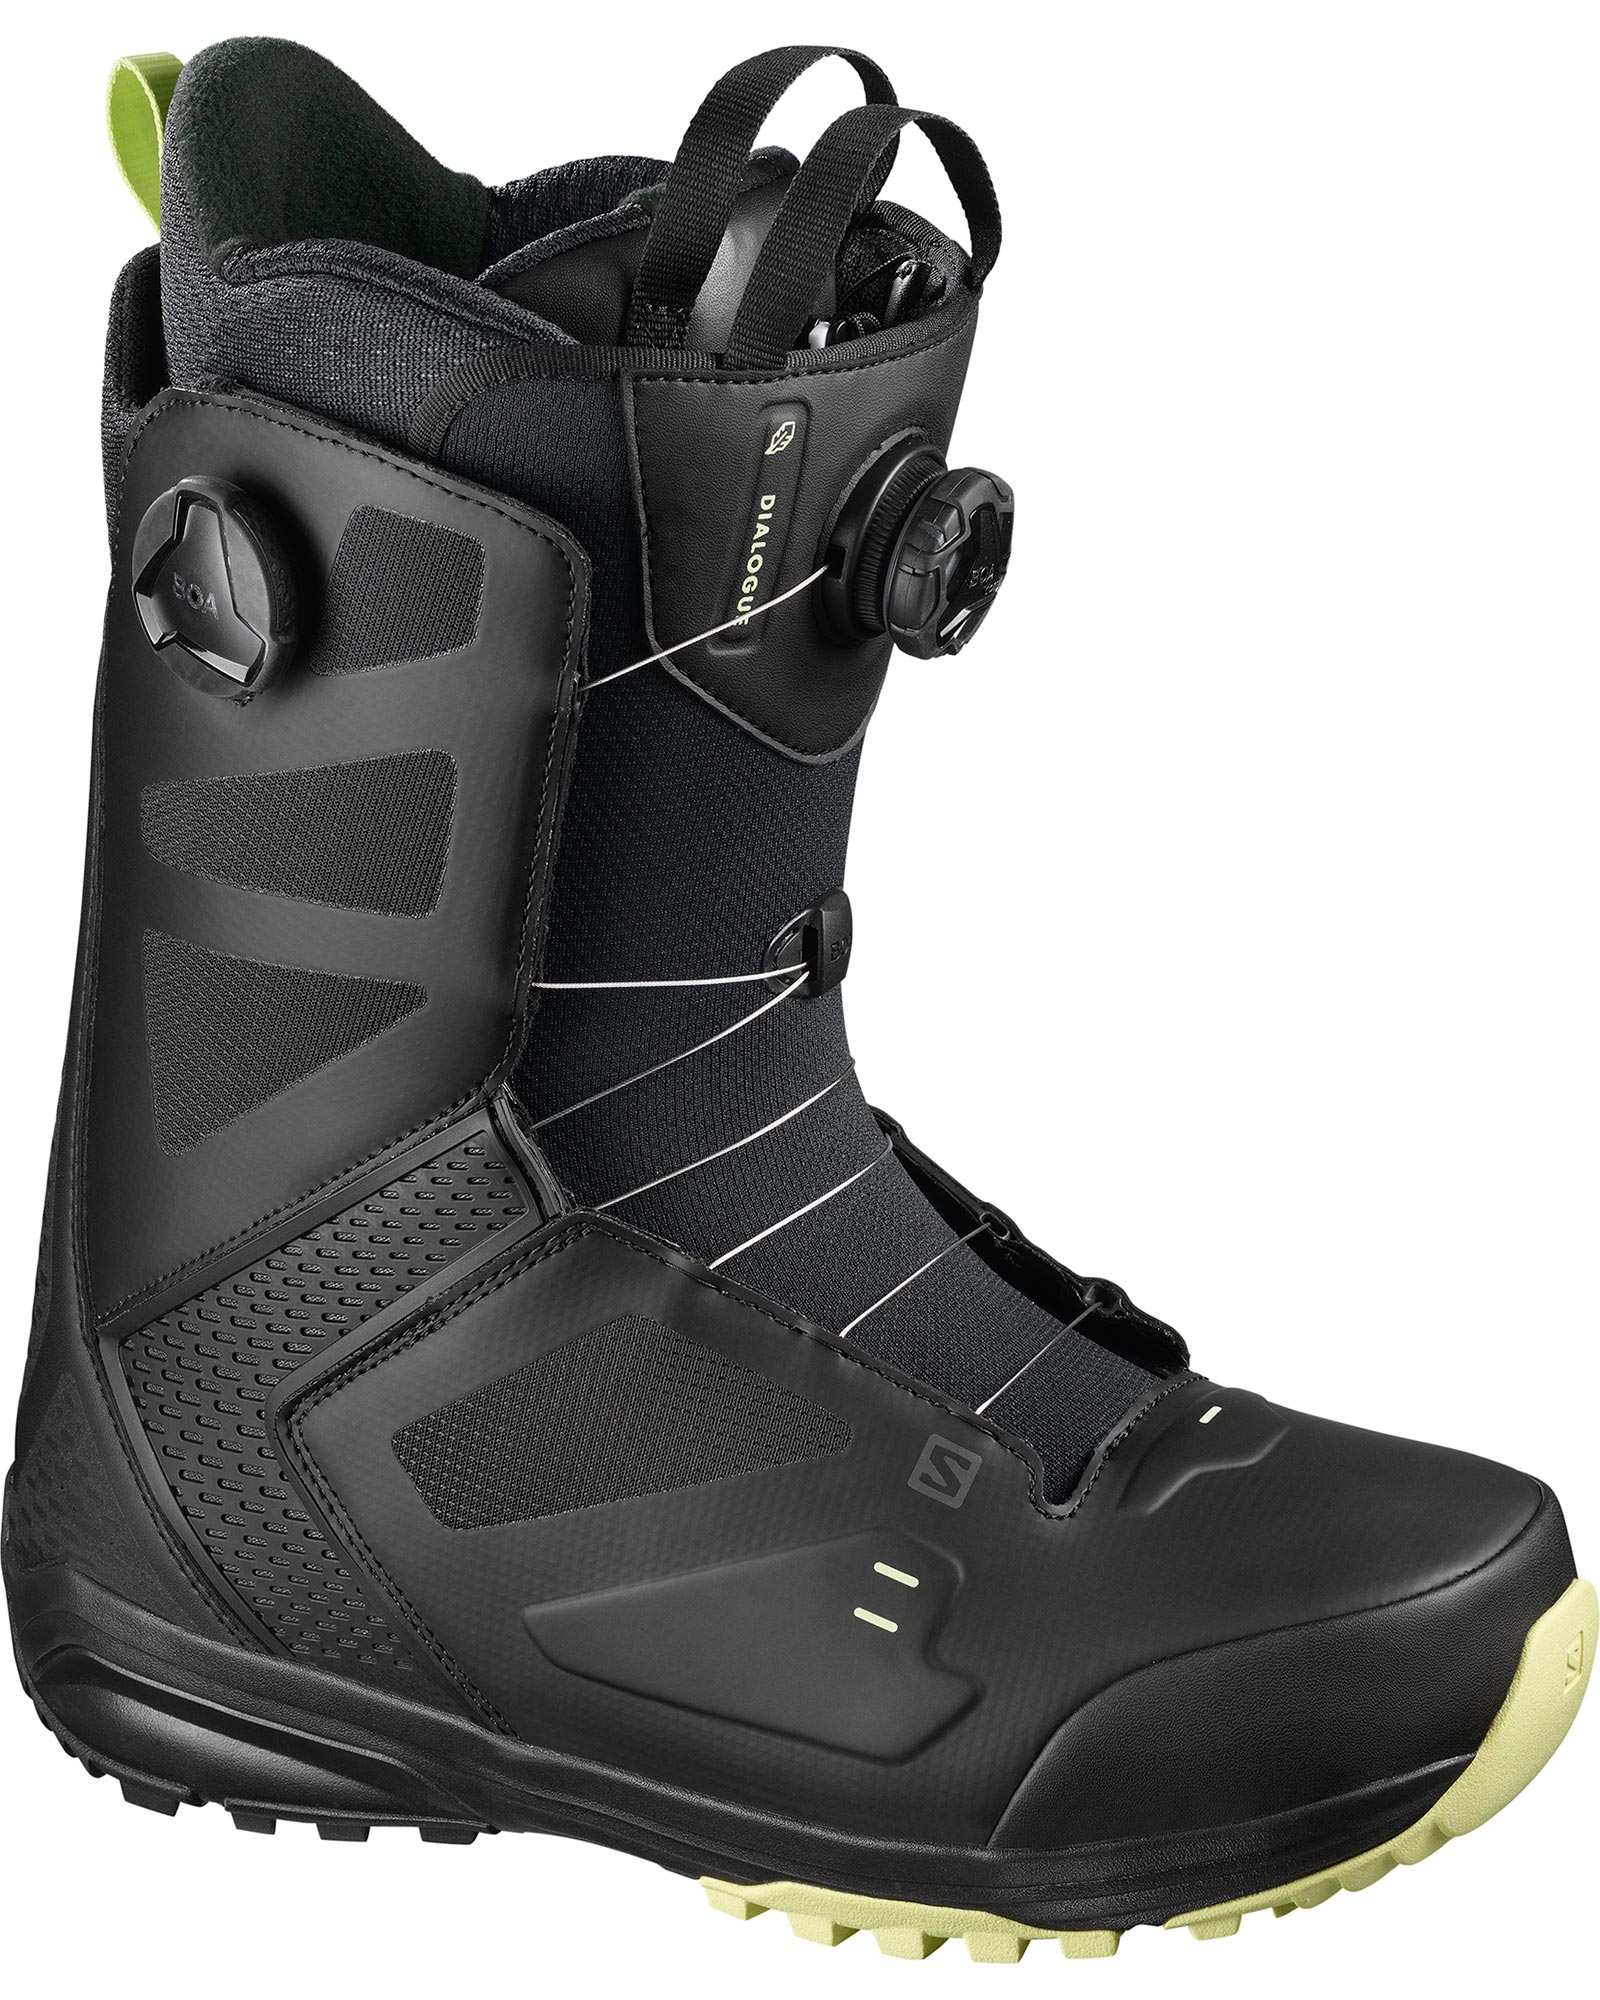 Salomon Snowboards Men's Dialogue Focus BOA Snowboard Boots 2020 / 2021 0